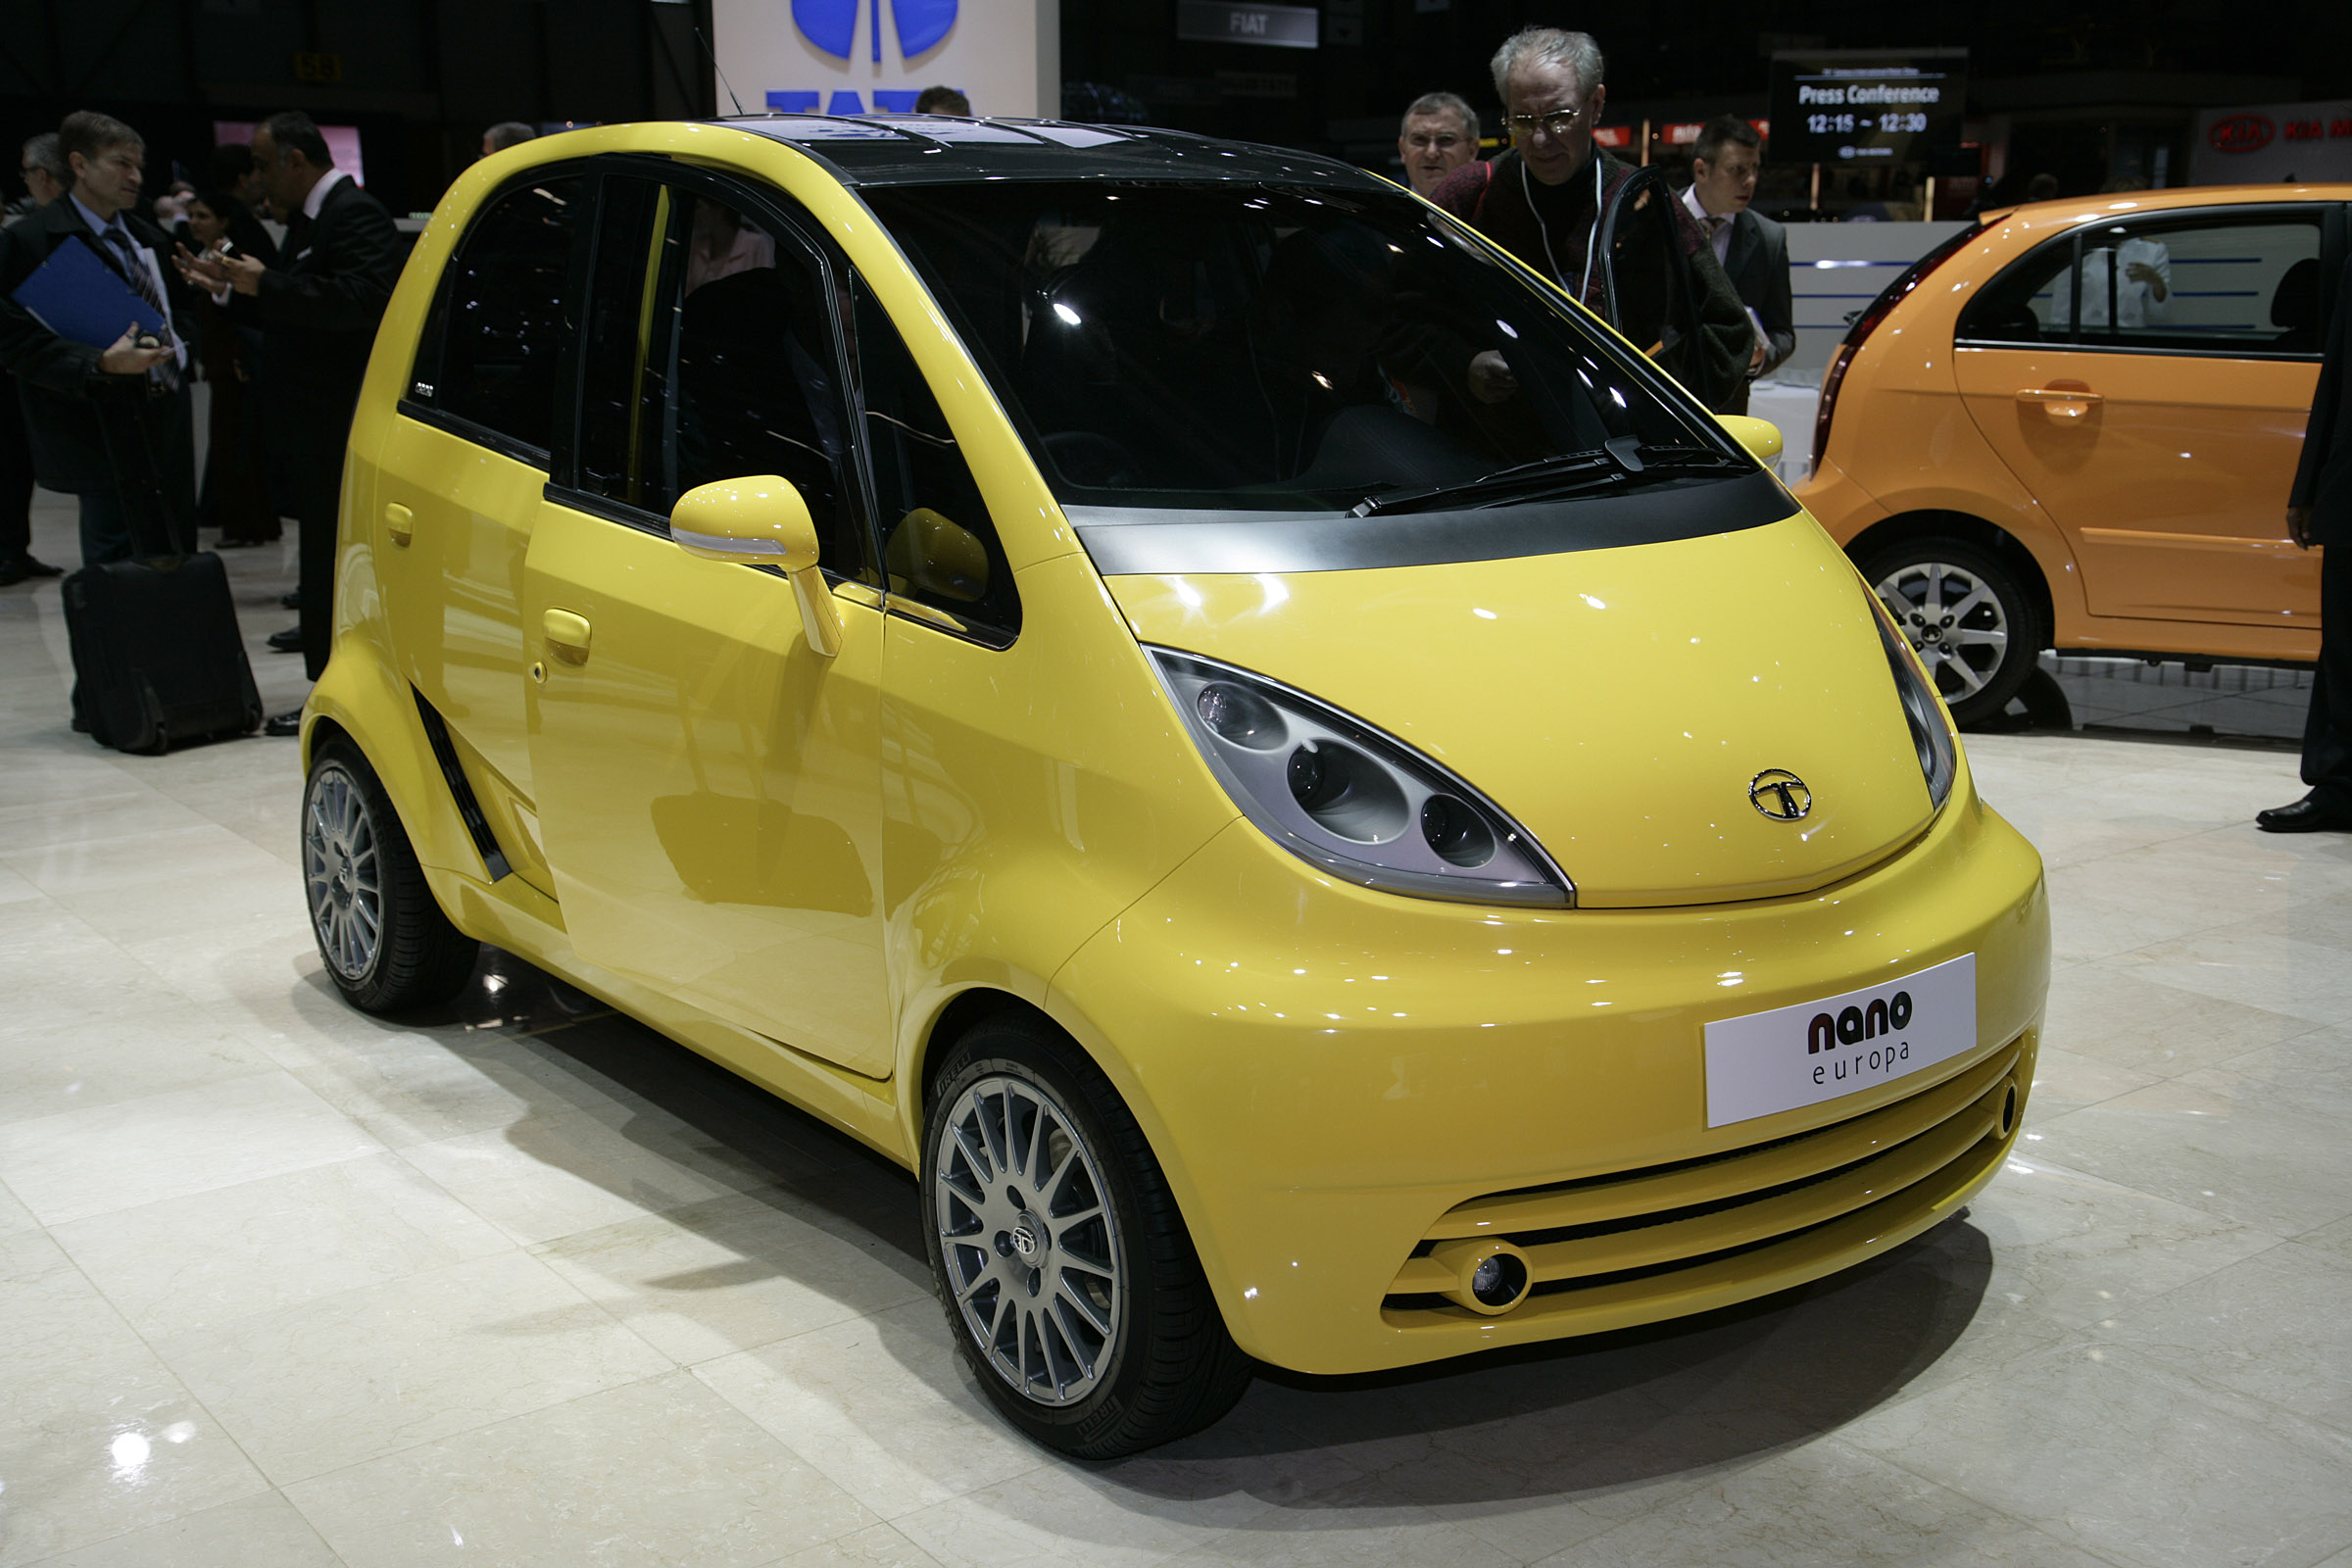 tata nano Tata nano production might stop soon tata motors has not yet taken a decision regarding the future of the nano hatchback tata motors has produced just one unit of the nano in june 2018, with a recorded sales of just three units.